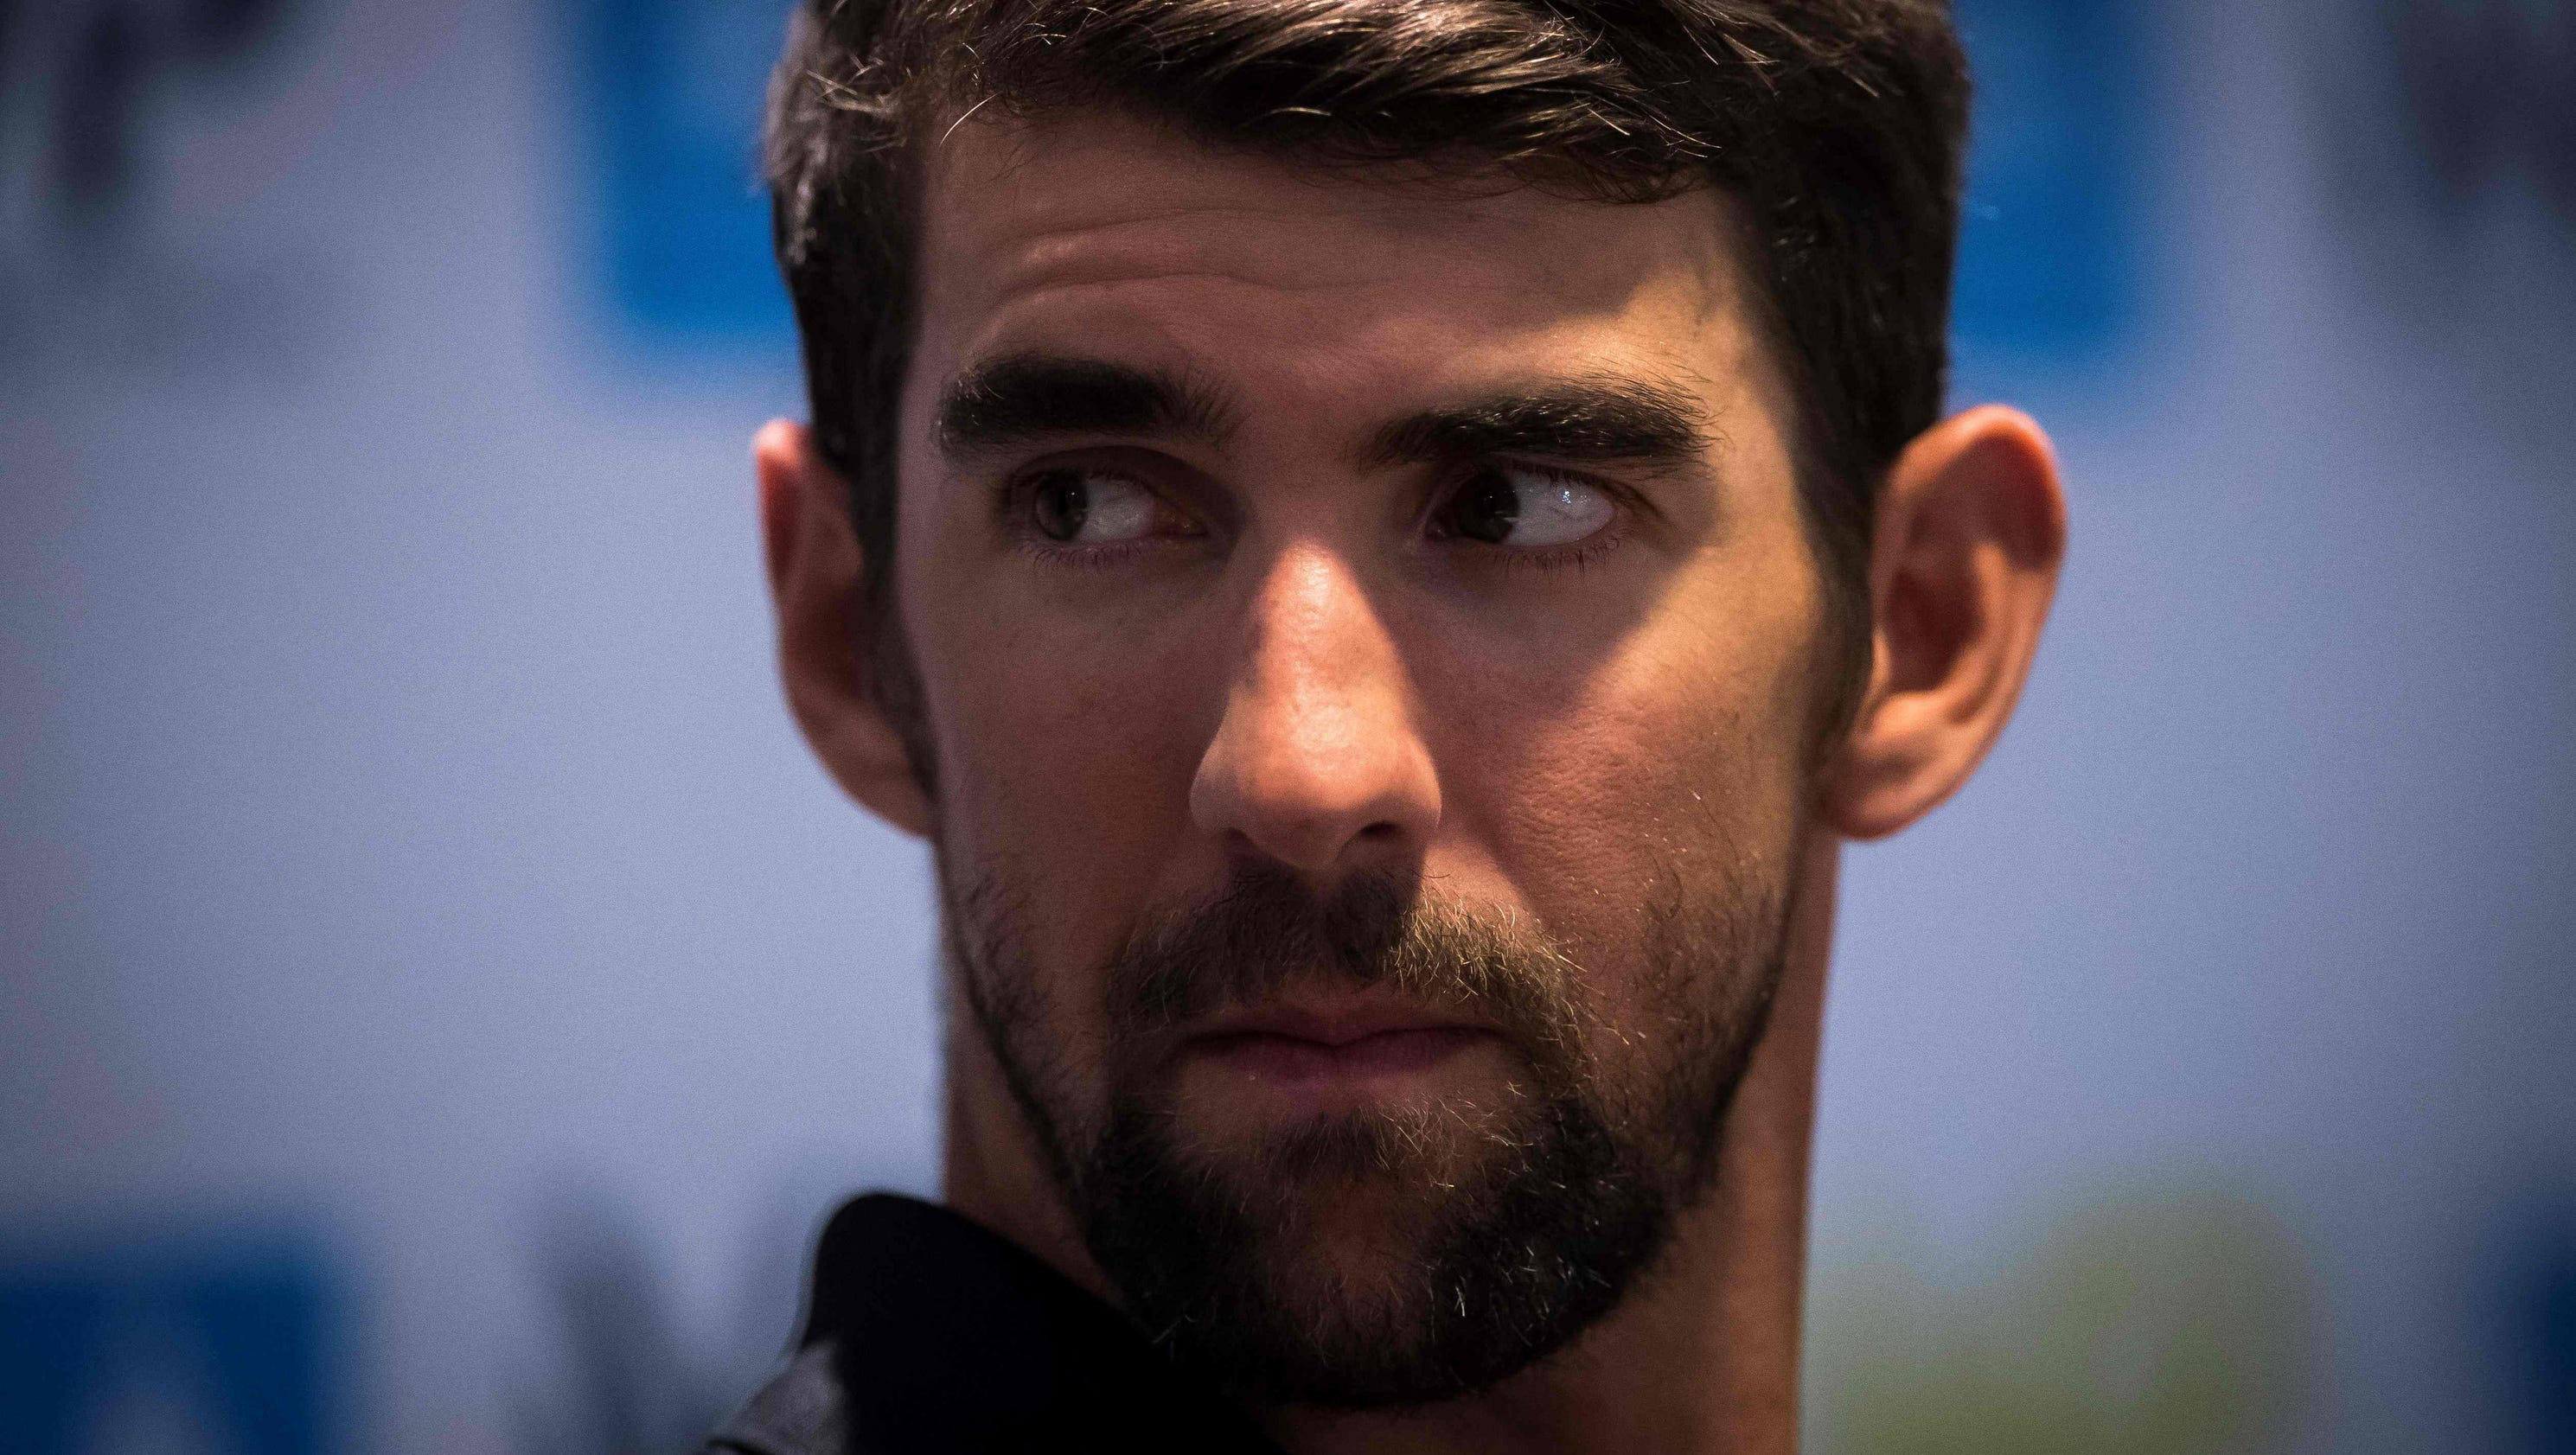 Michael Phelps Others To Testify About Frustrations In